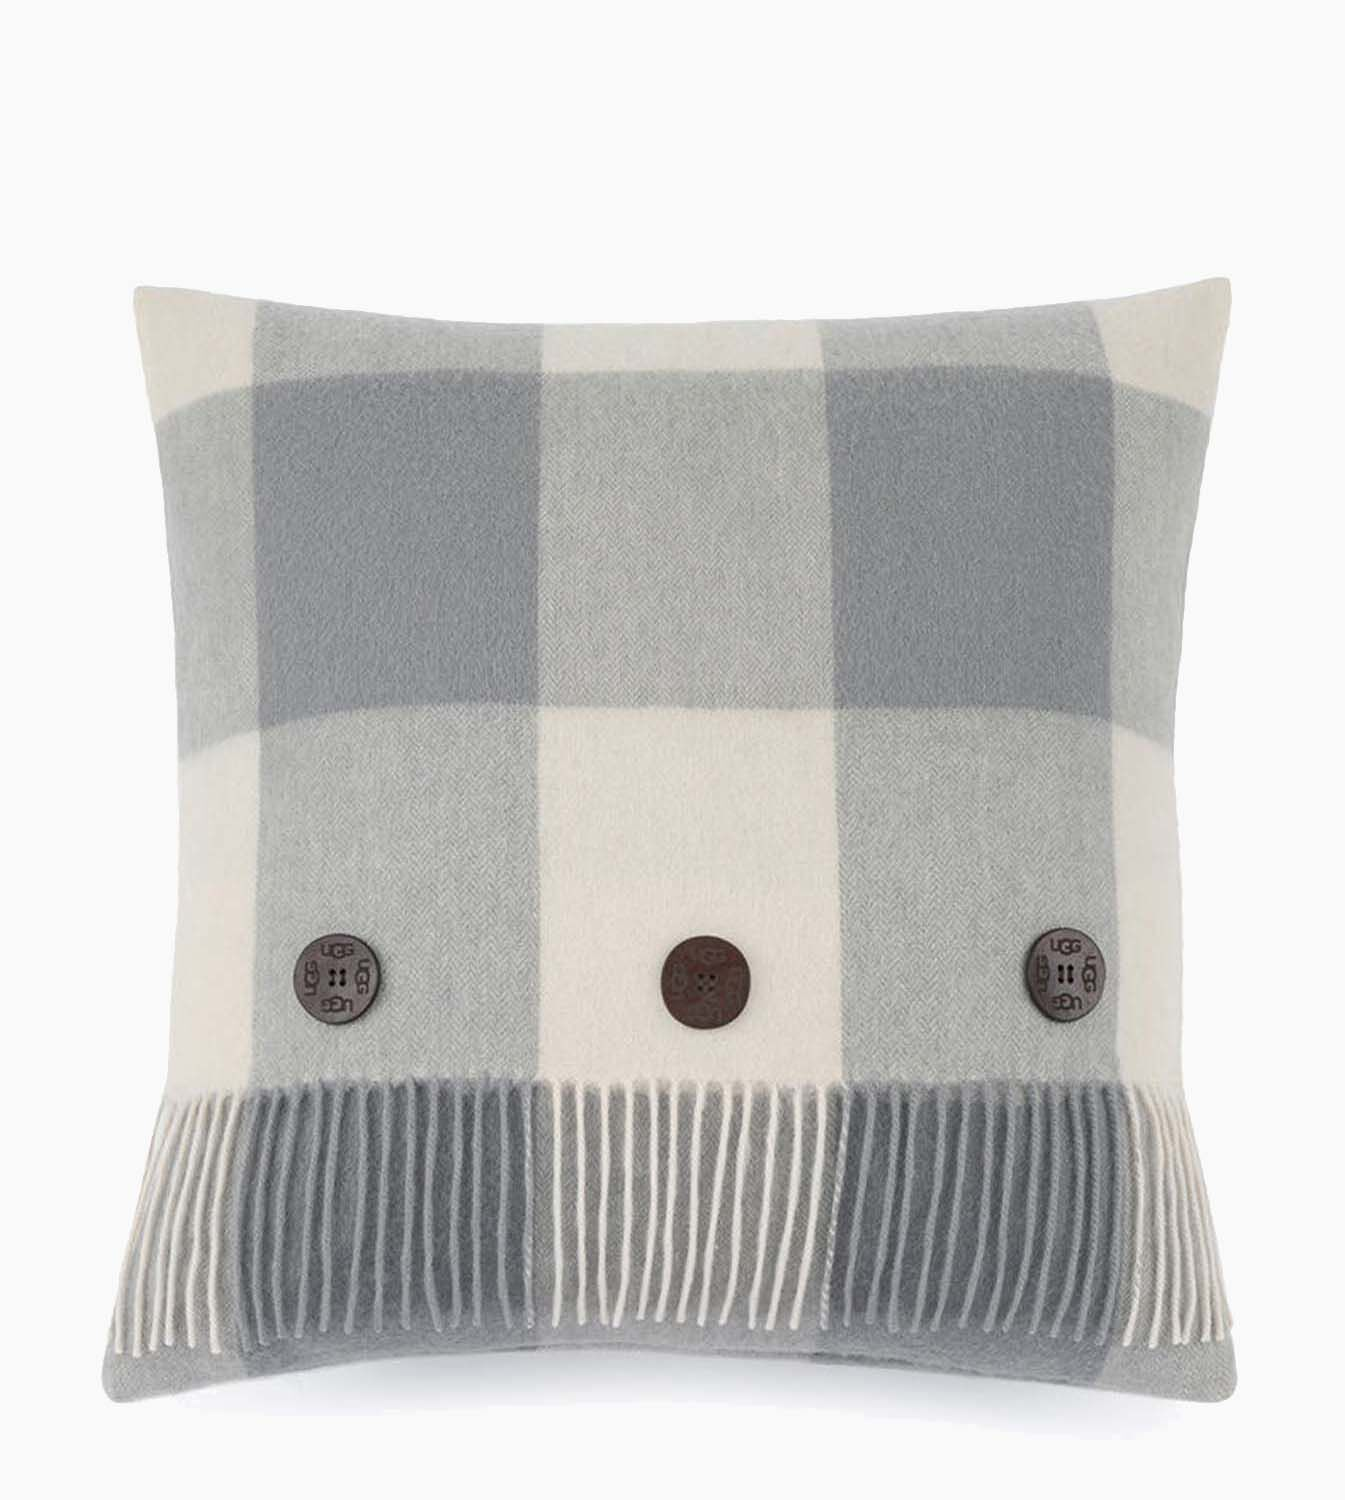 Decorative Pillows With Fringe Part - 44: Click To Zoom